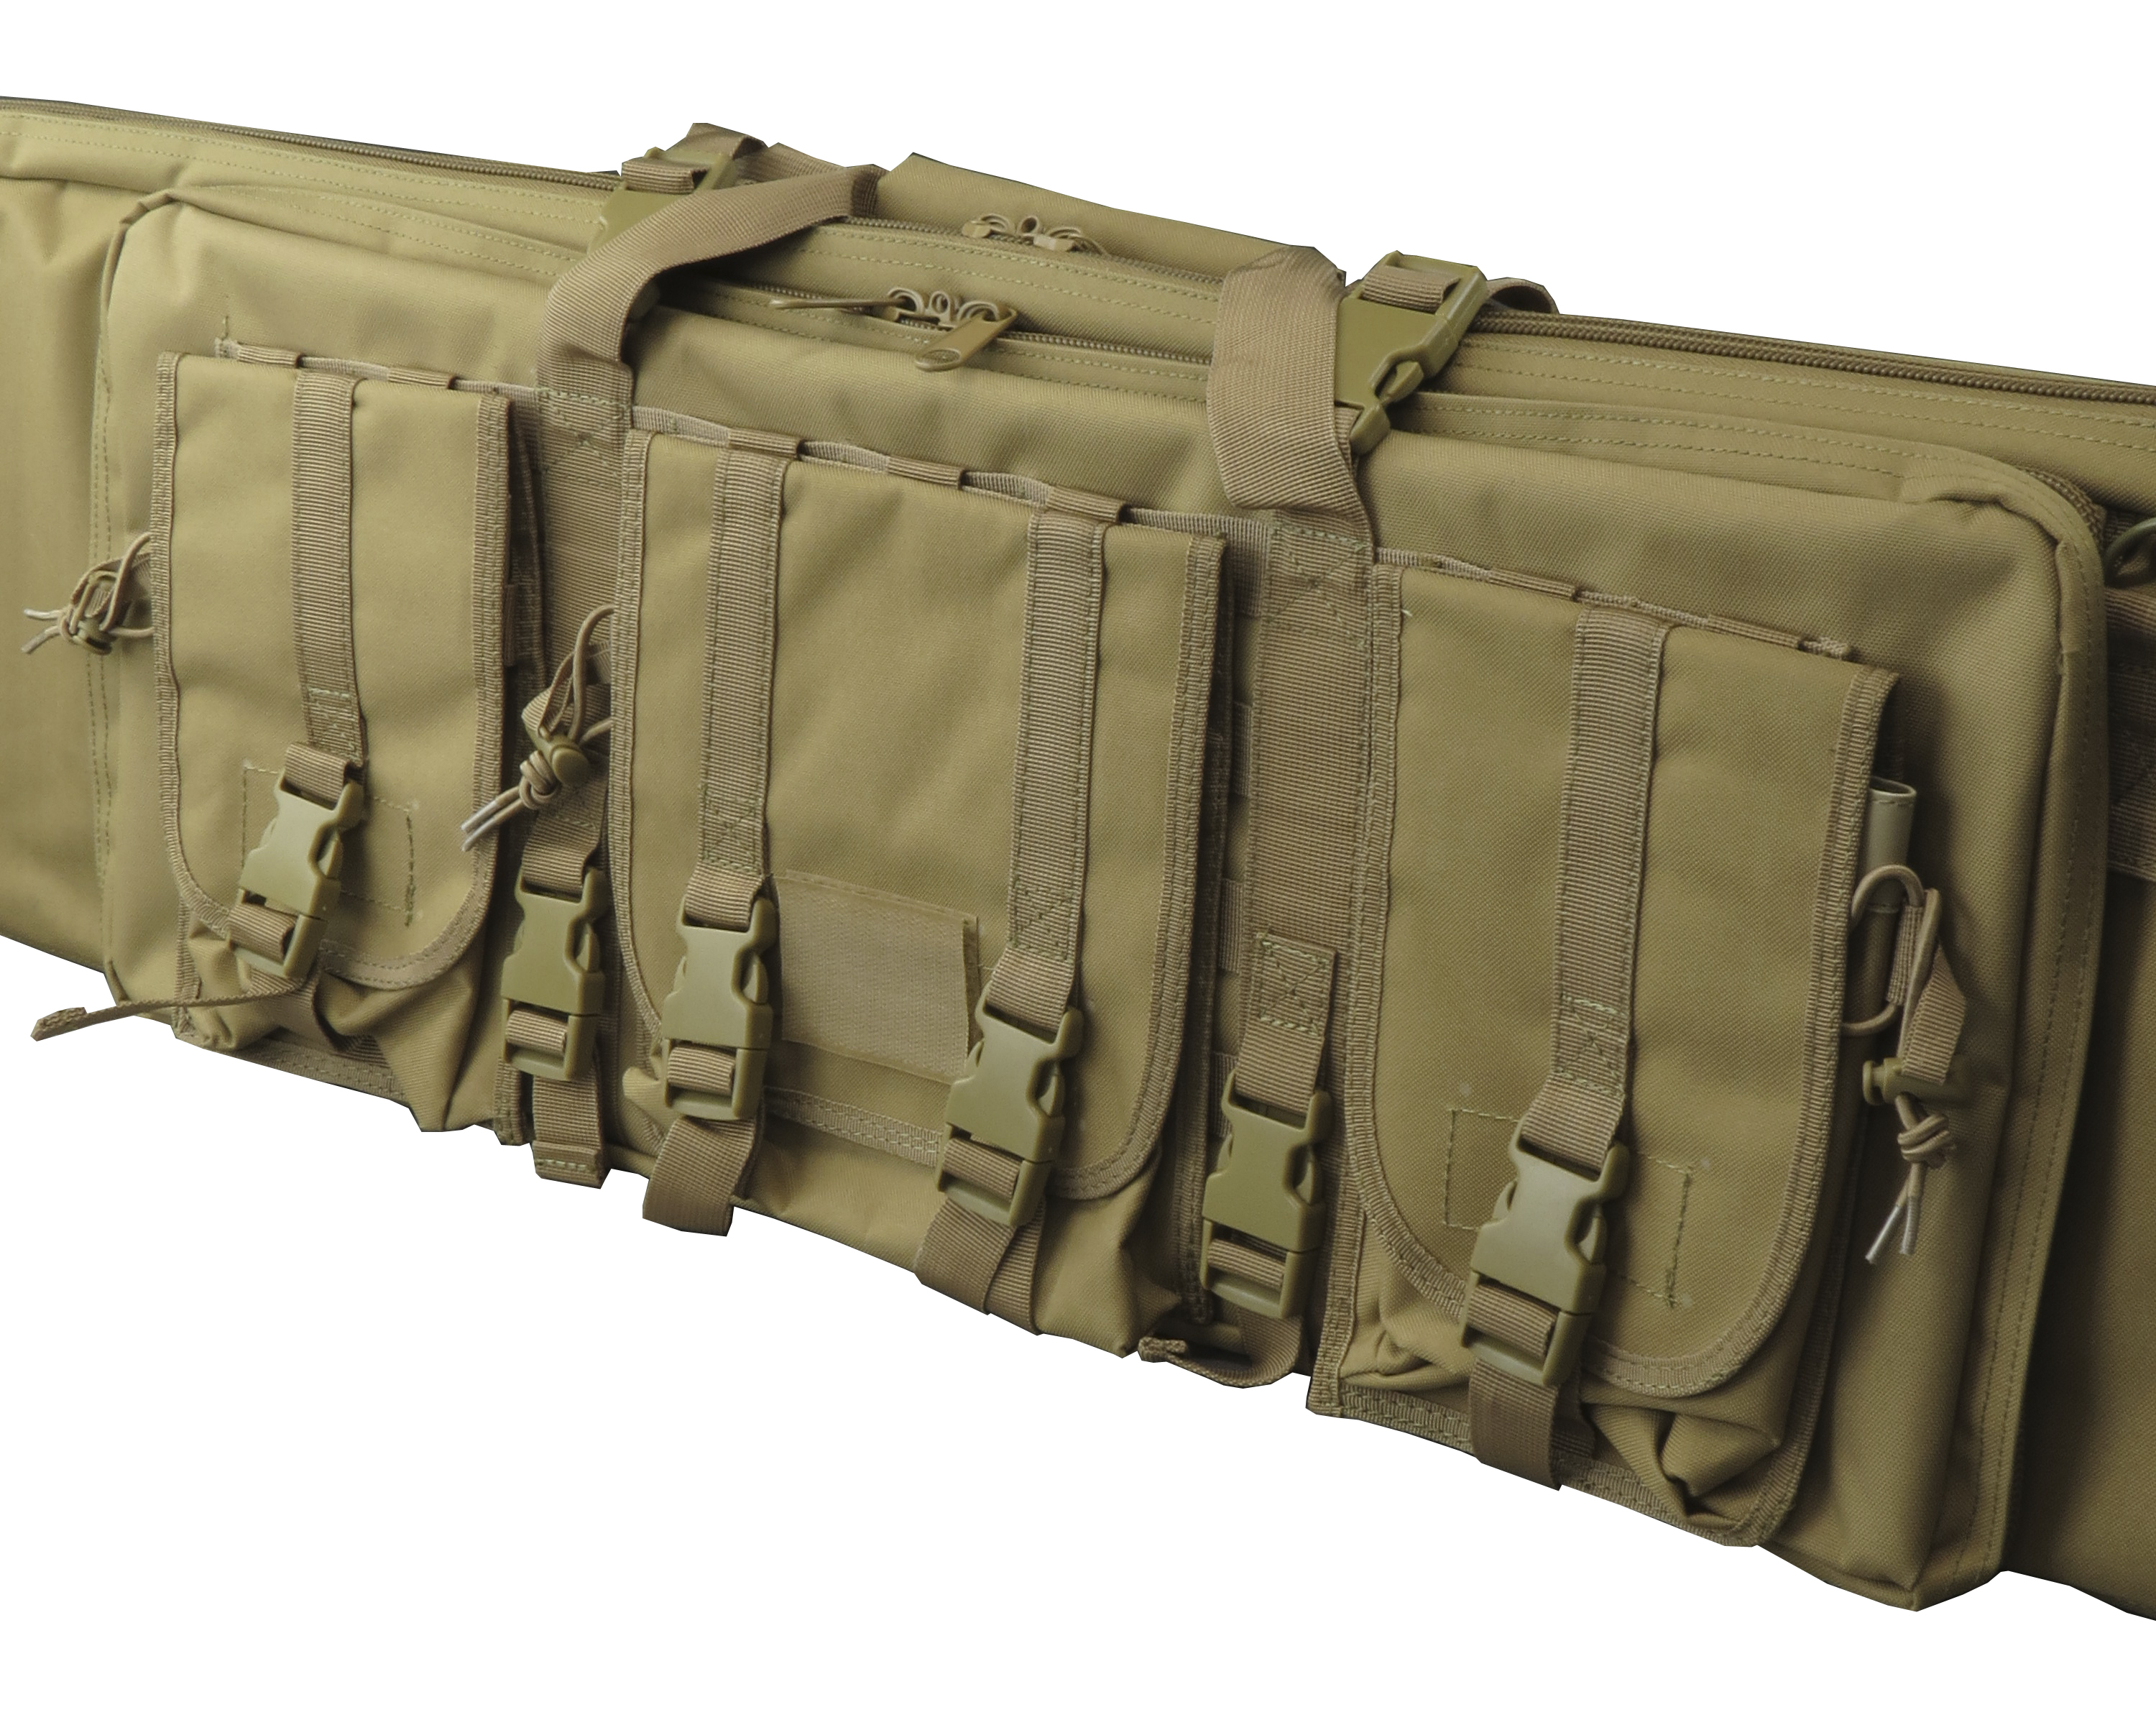 condor_42_single_rifle_case_view_6.jpg